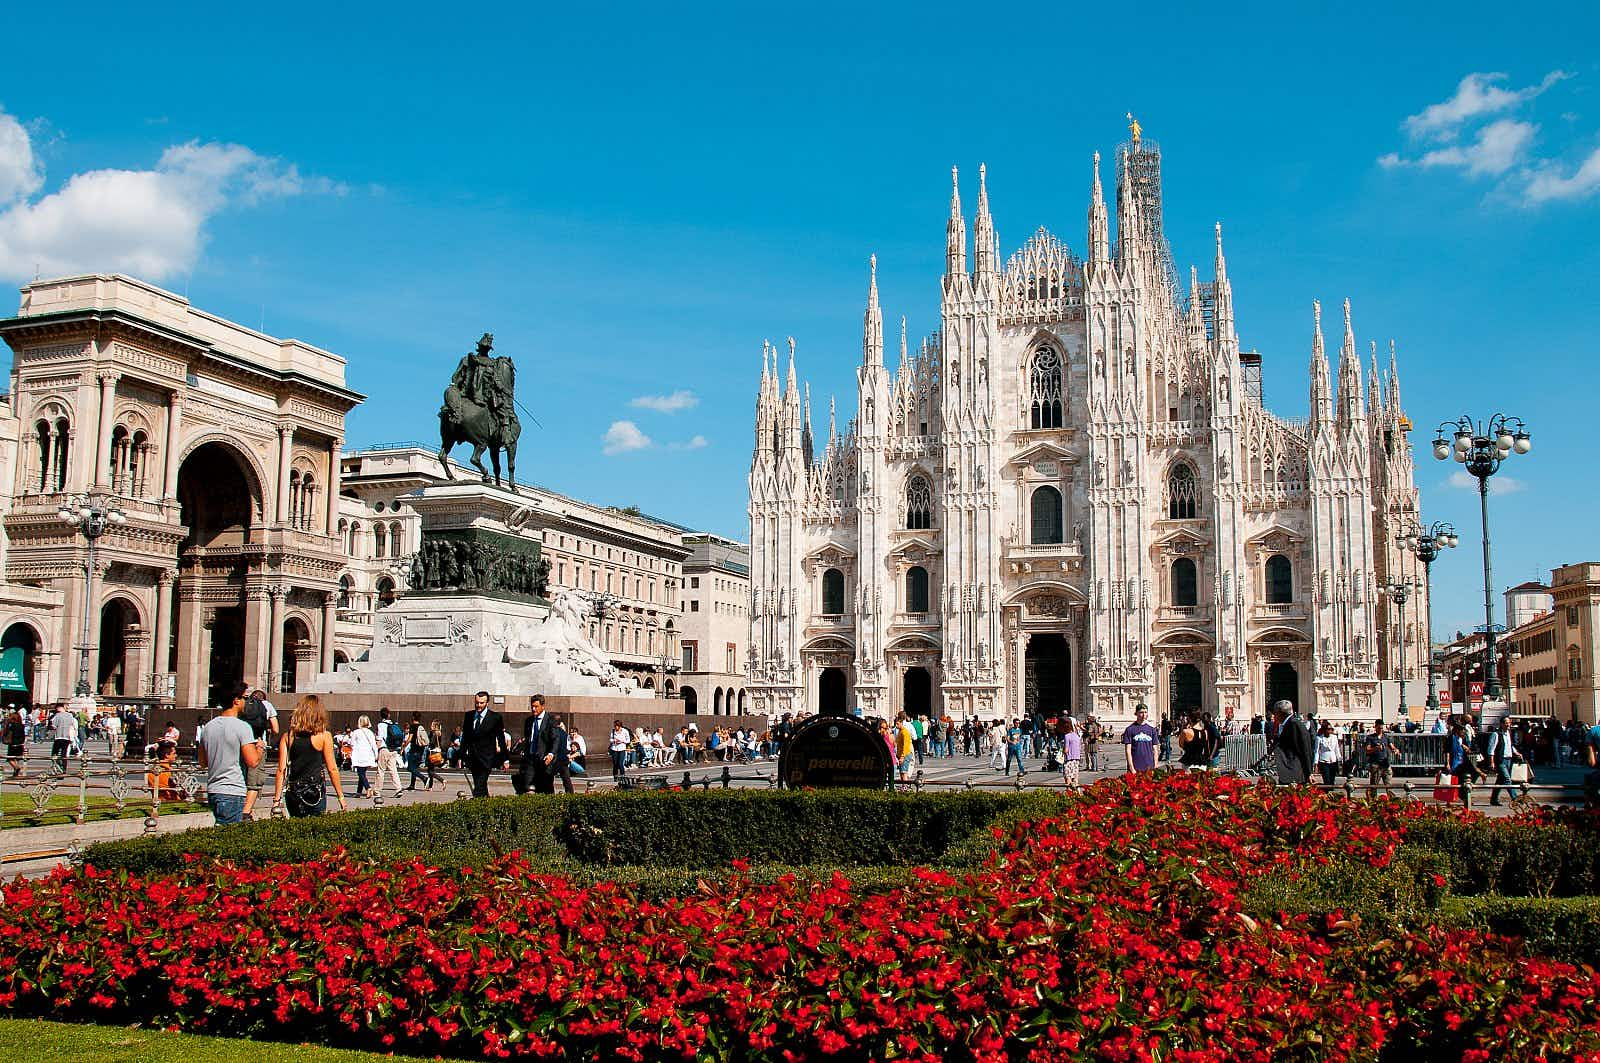 48 hours in Milan - Lonely Planet